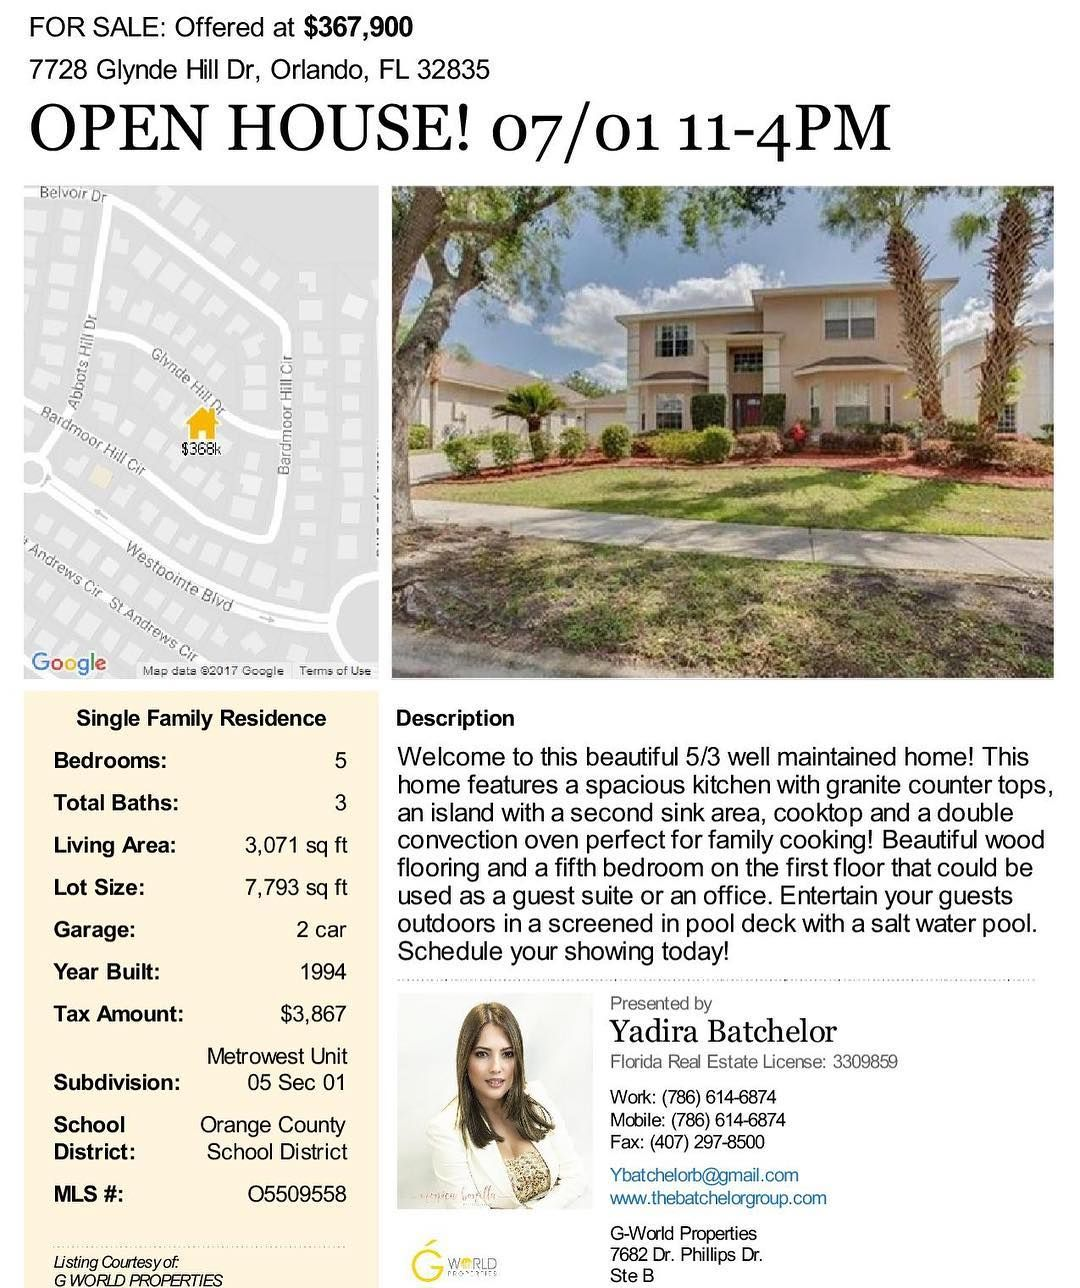 Awesome Orlando Fl Houses For Rent Apartments: Open House Invitation!! Saturday 07/01 Doors Open From 11